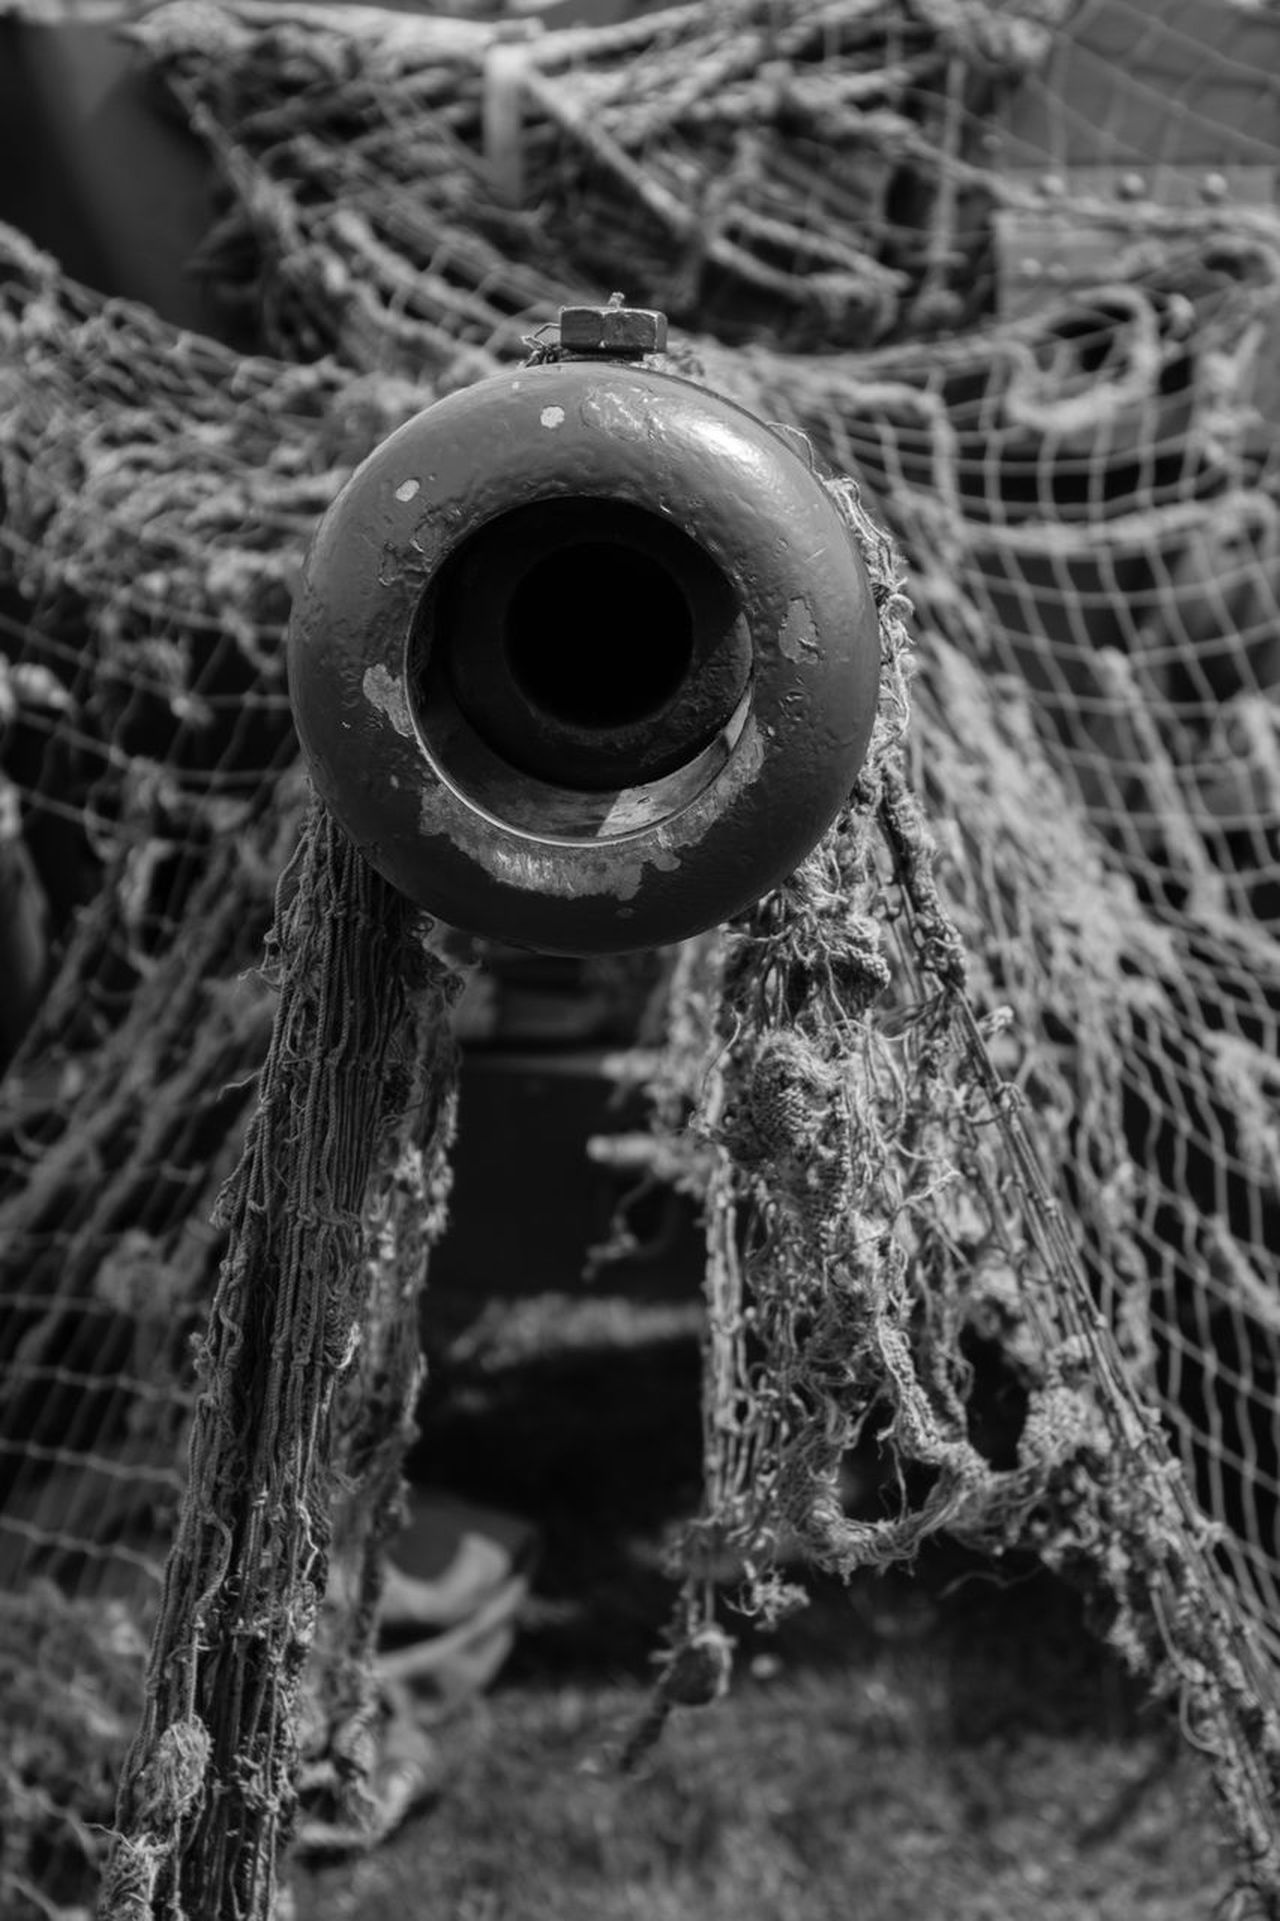 No People Focus On Foreground Close-up Day Outdoors Nature Water Cressing Temple Temple At War War Netting Defence Army Tank Military Blackandwhite Photography Blackandwhite